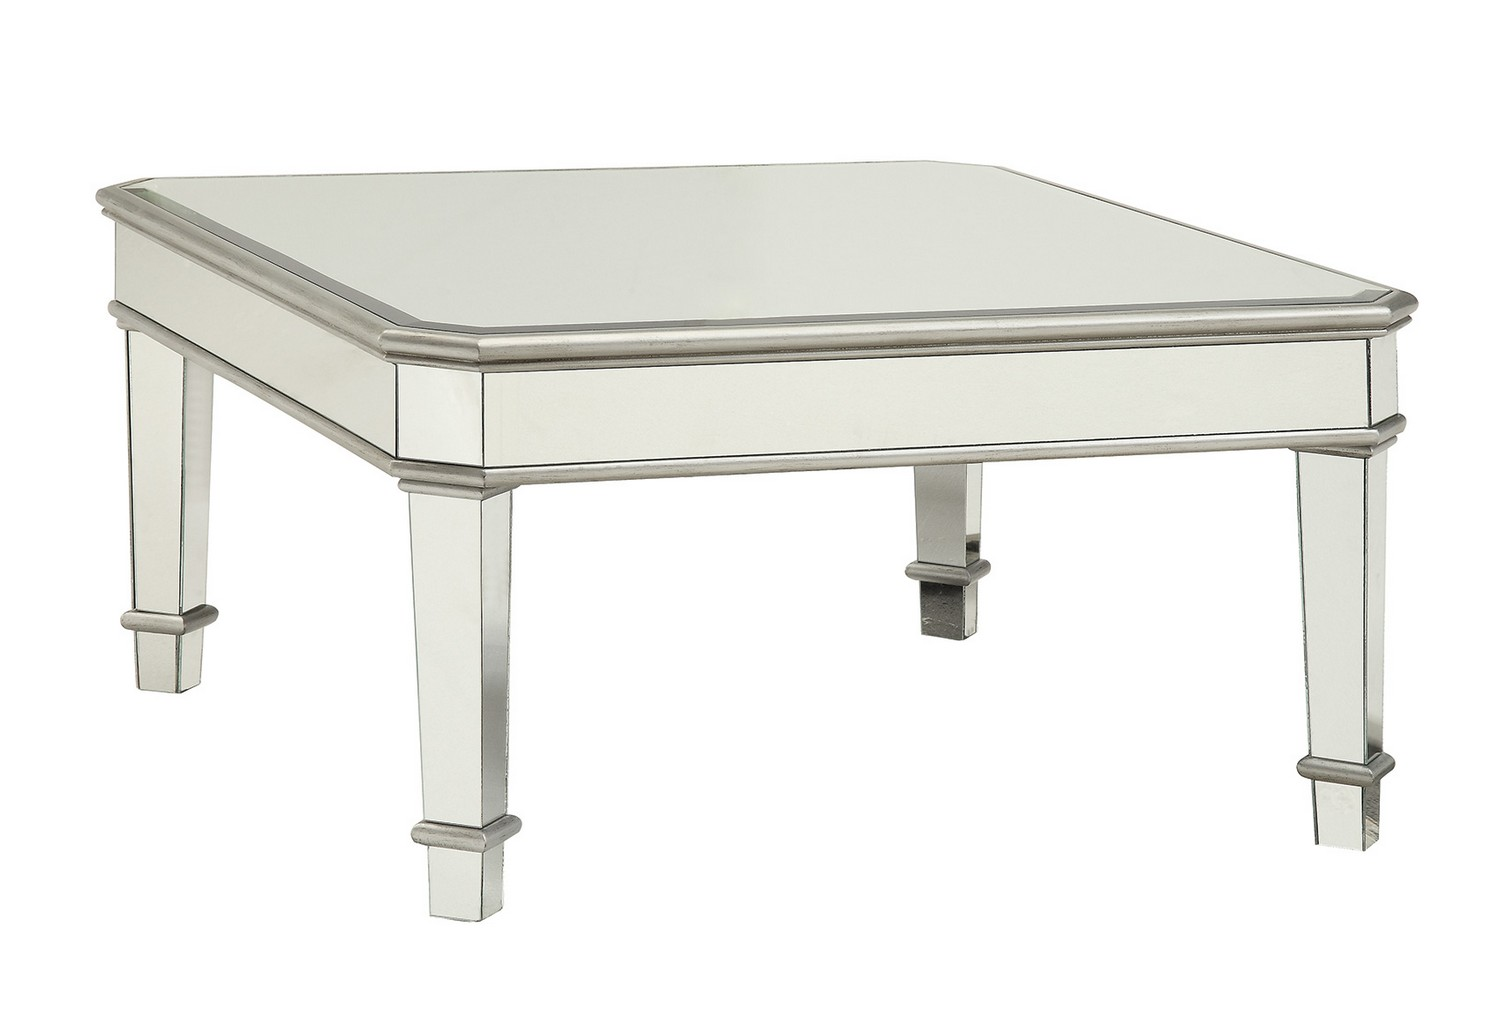 Coaster 703938 Coffee/Cocktail Table - Silver